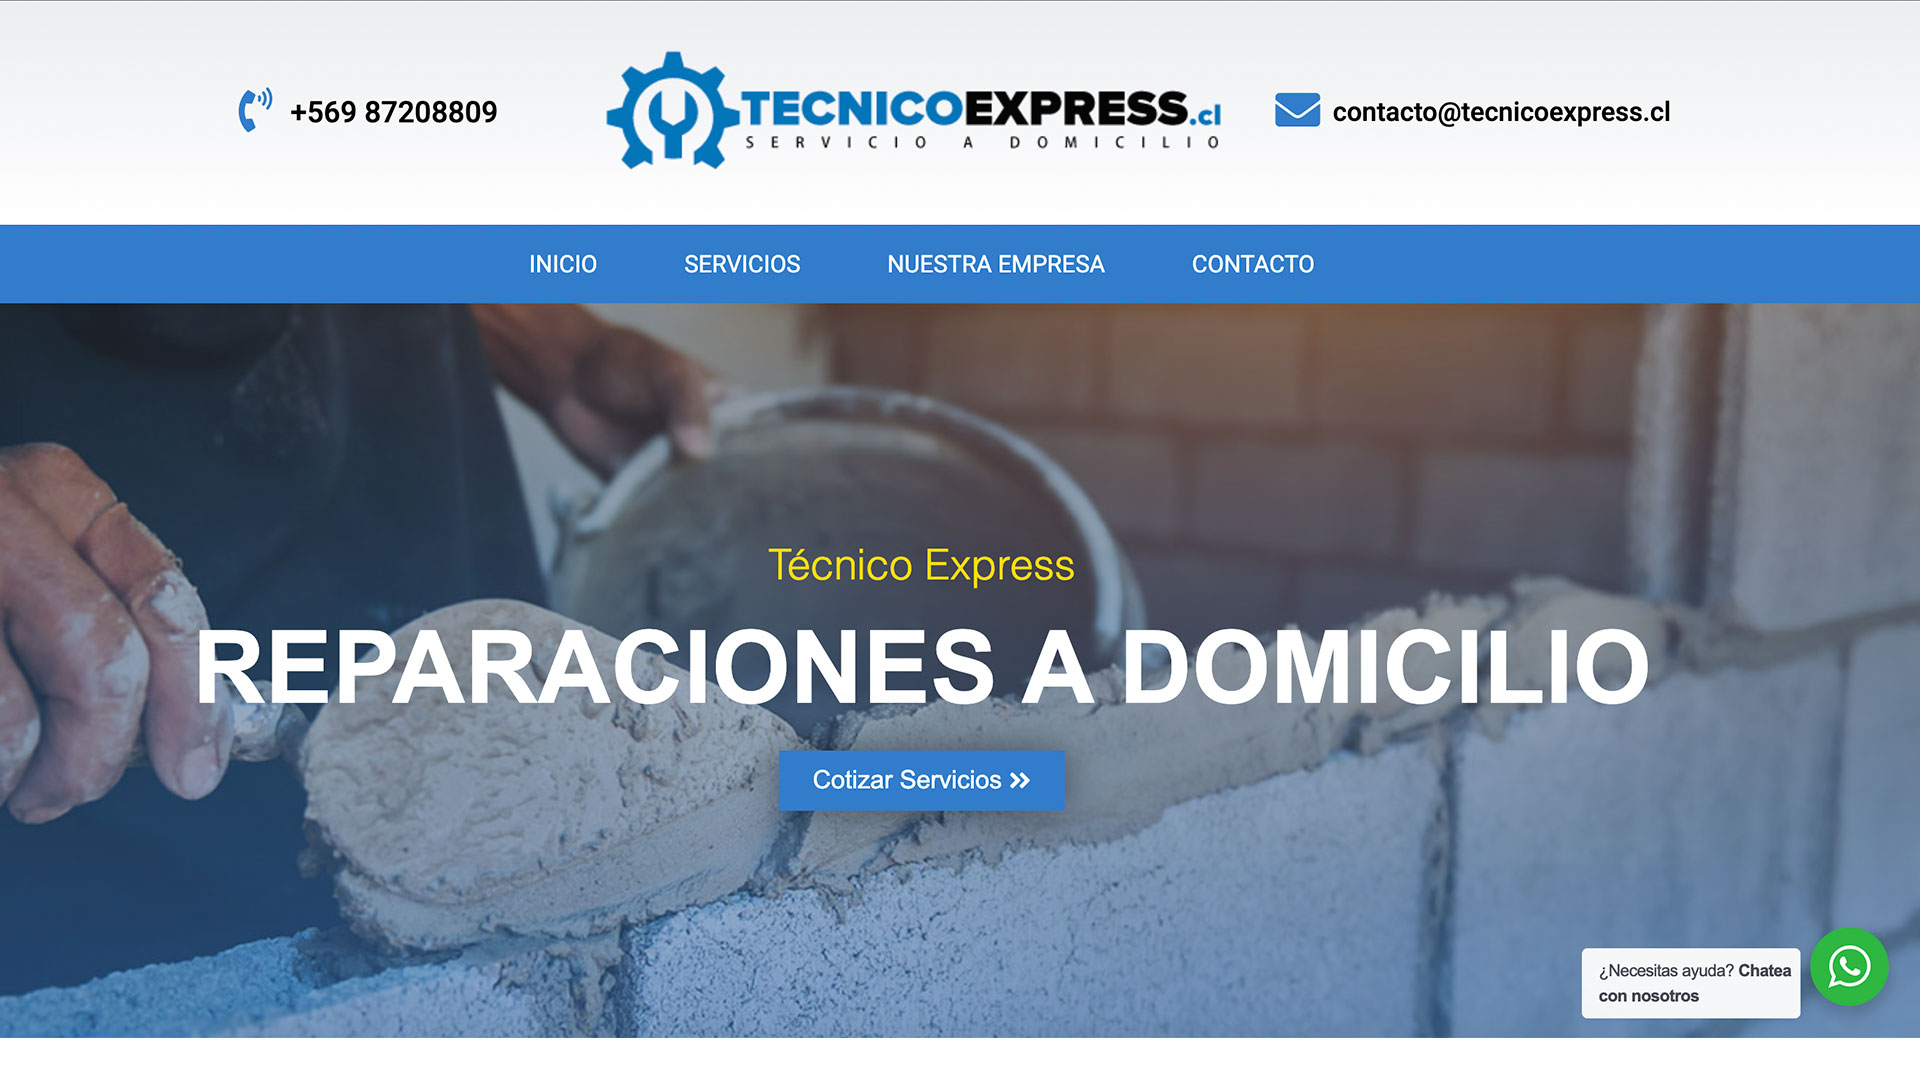 Tecnicoexpress.cl